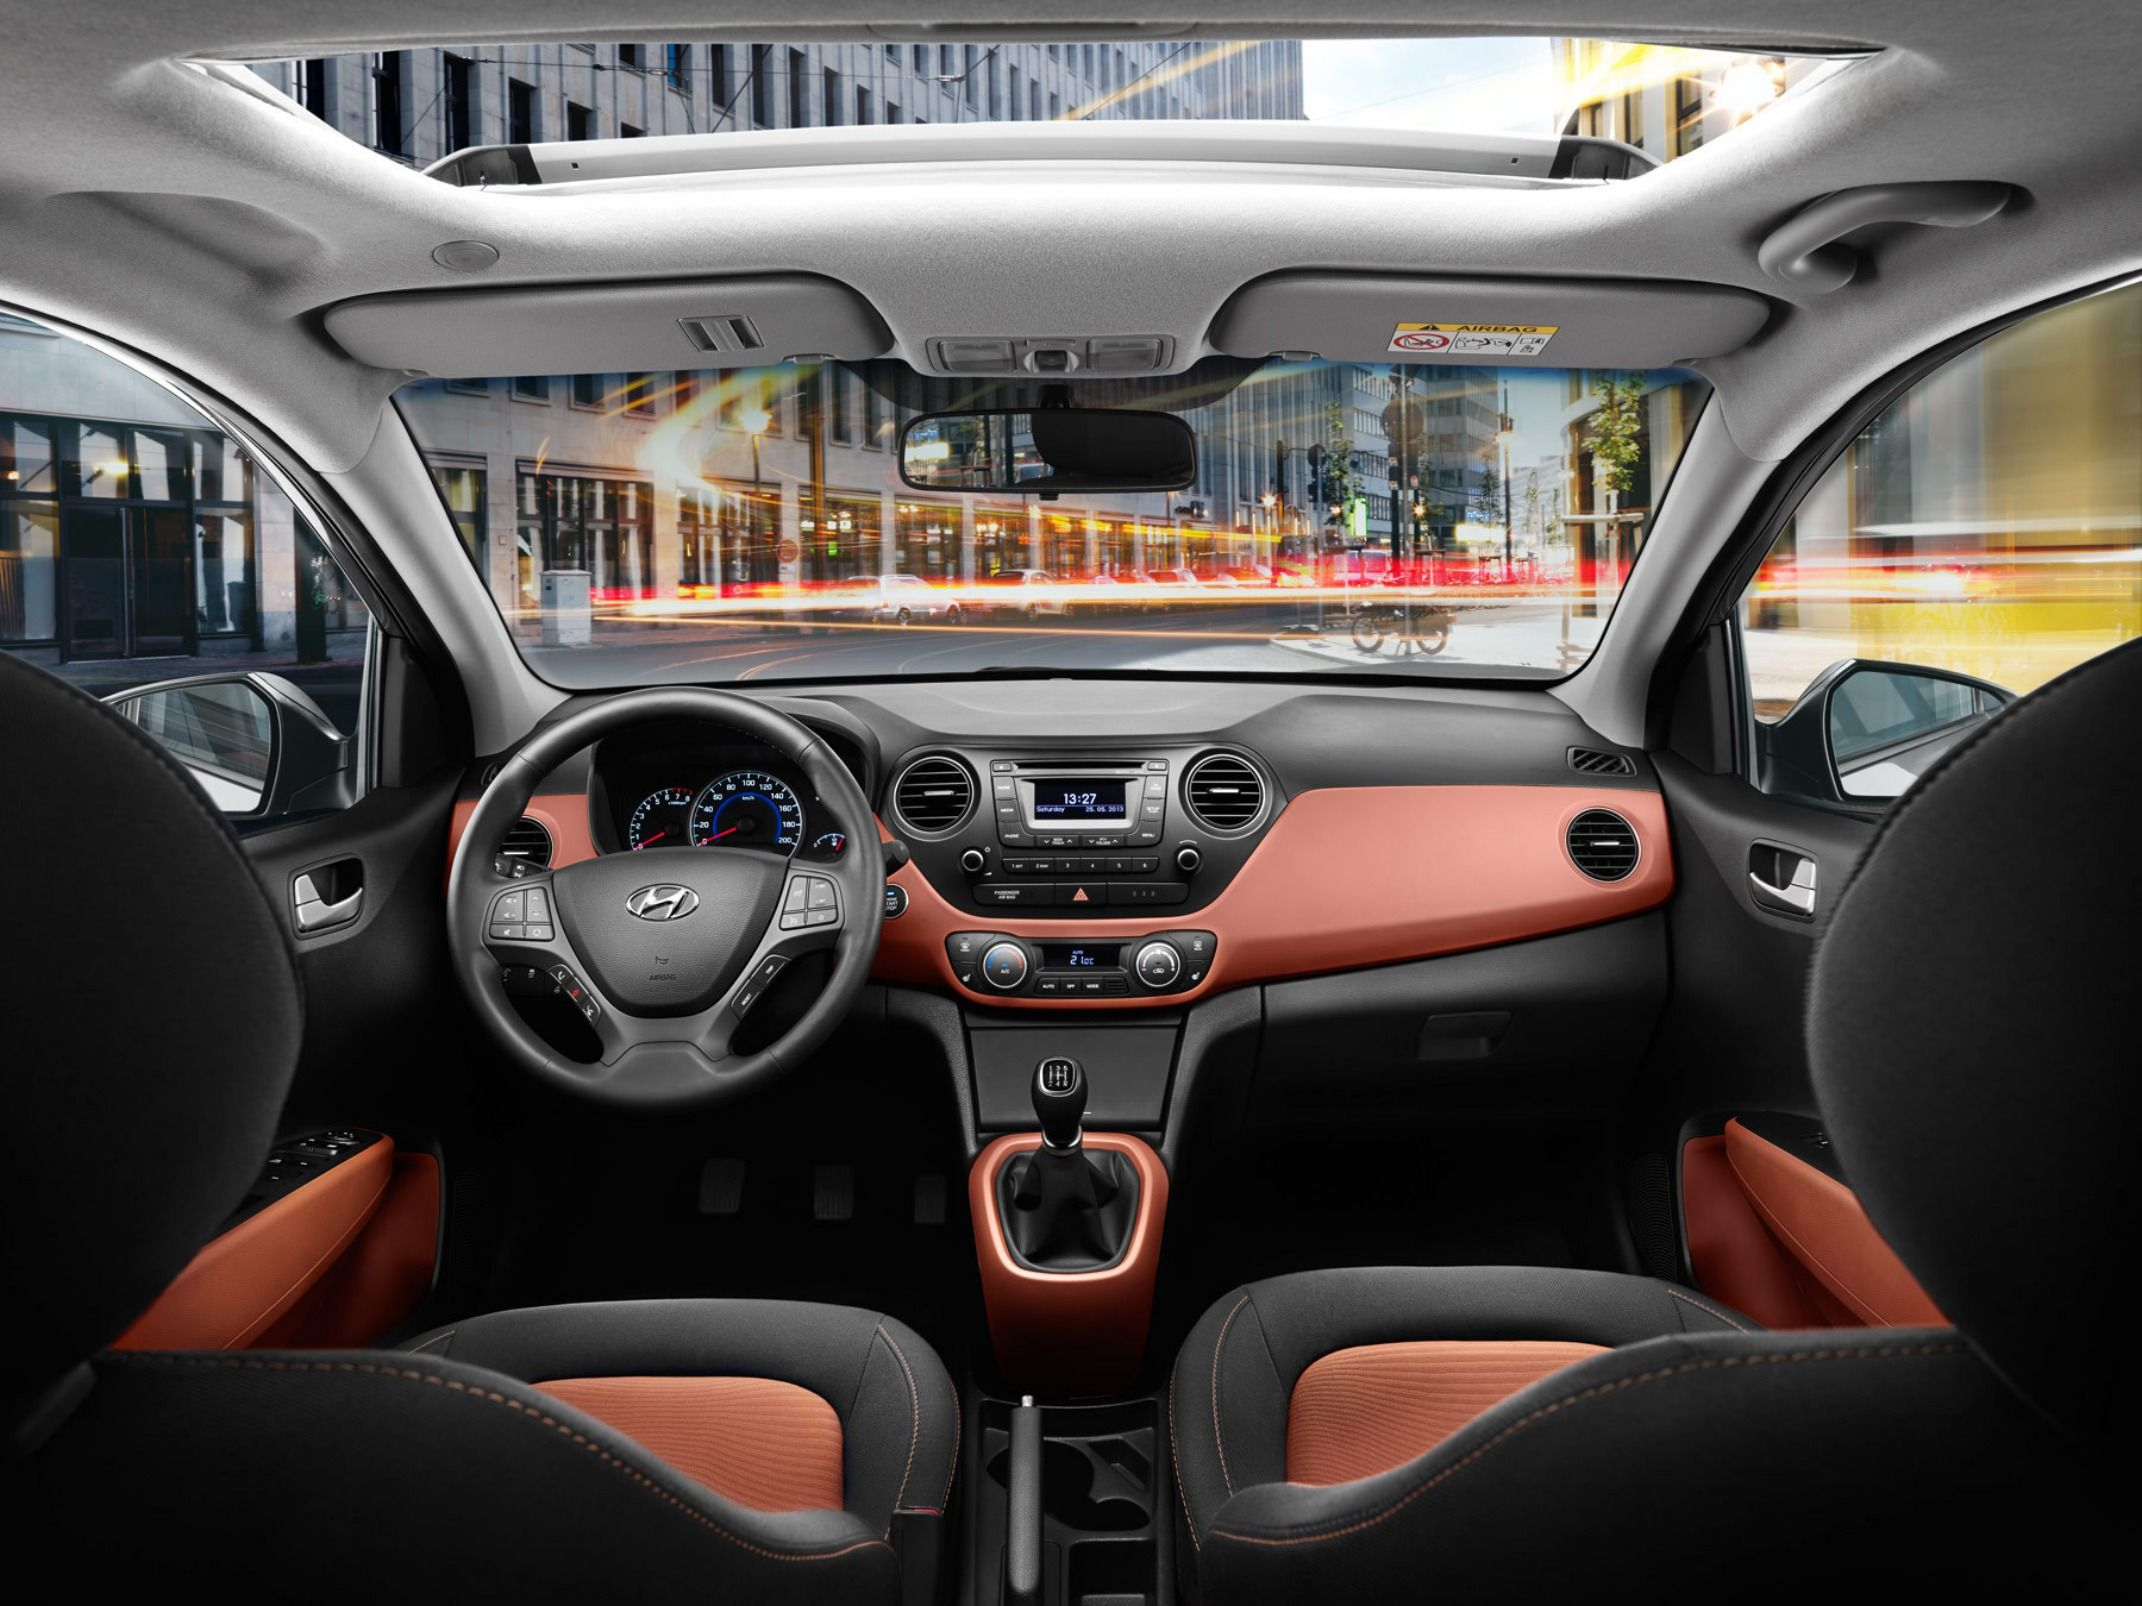 2017 hyundai i10 interior | Cars | Pinterest | Luxury vehicle ...